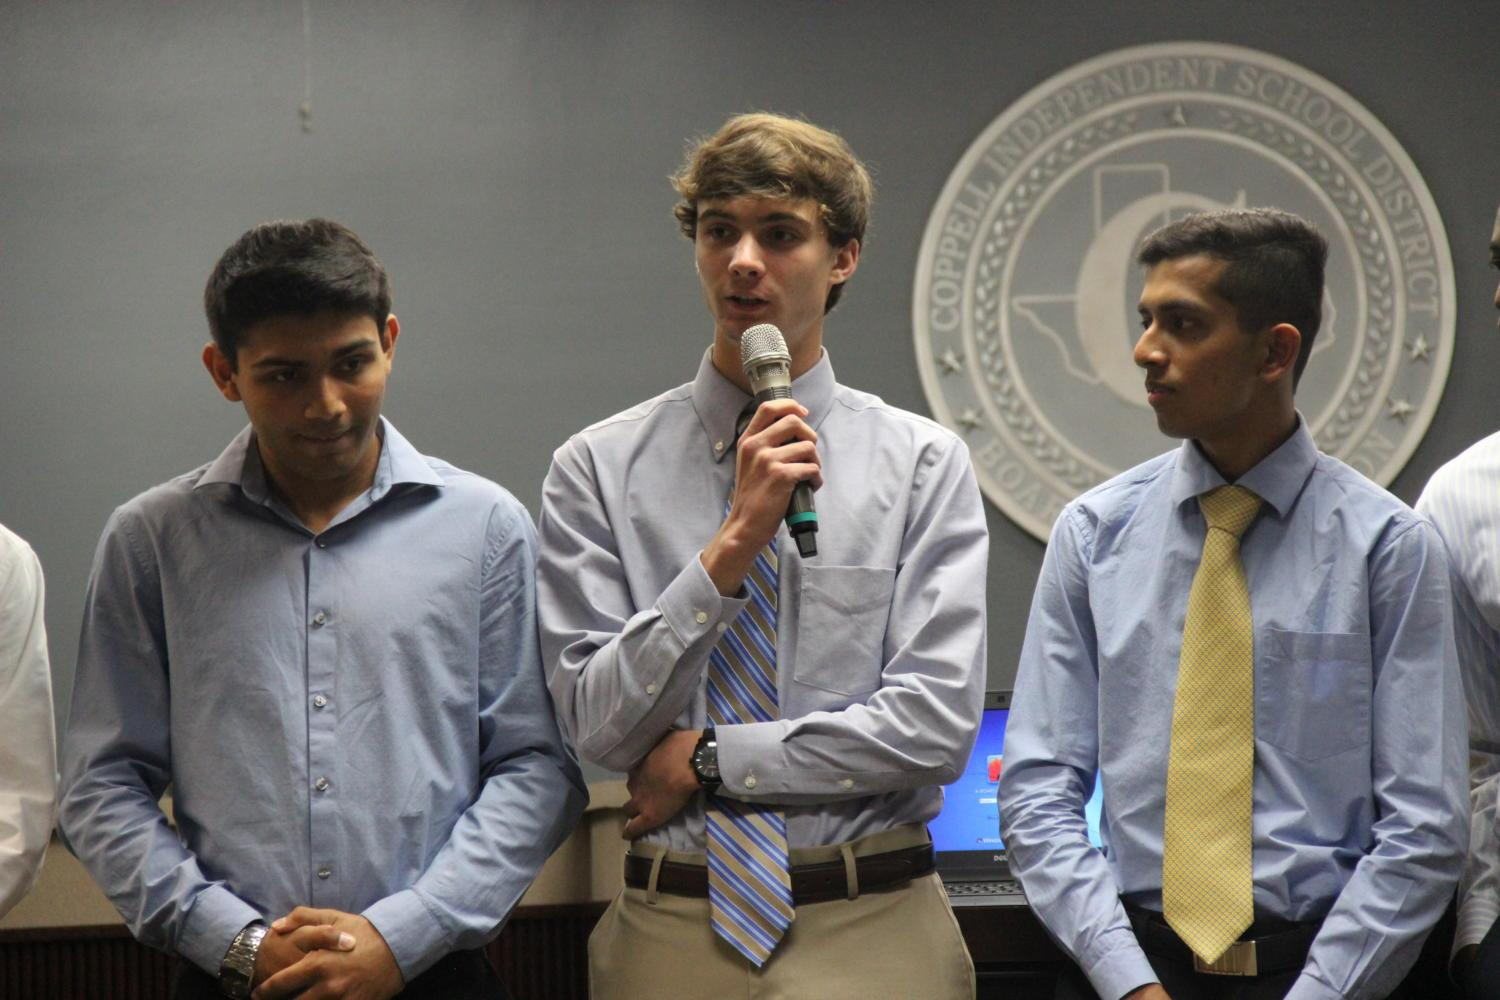 Coppell High School Track Coach Nicholas Benton's Academic All-State qualifiers were recognized at Monday night's Board of Trustees meeting. Boys track All-State qualifier Evan Harr introduces himself to the packed room in the Vonita White Administration Building.